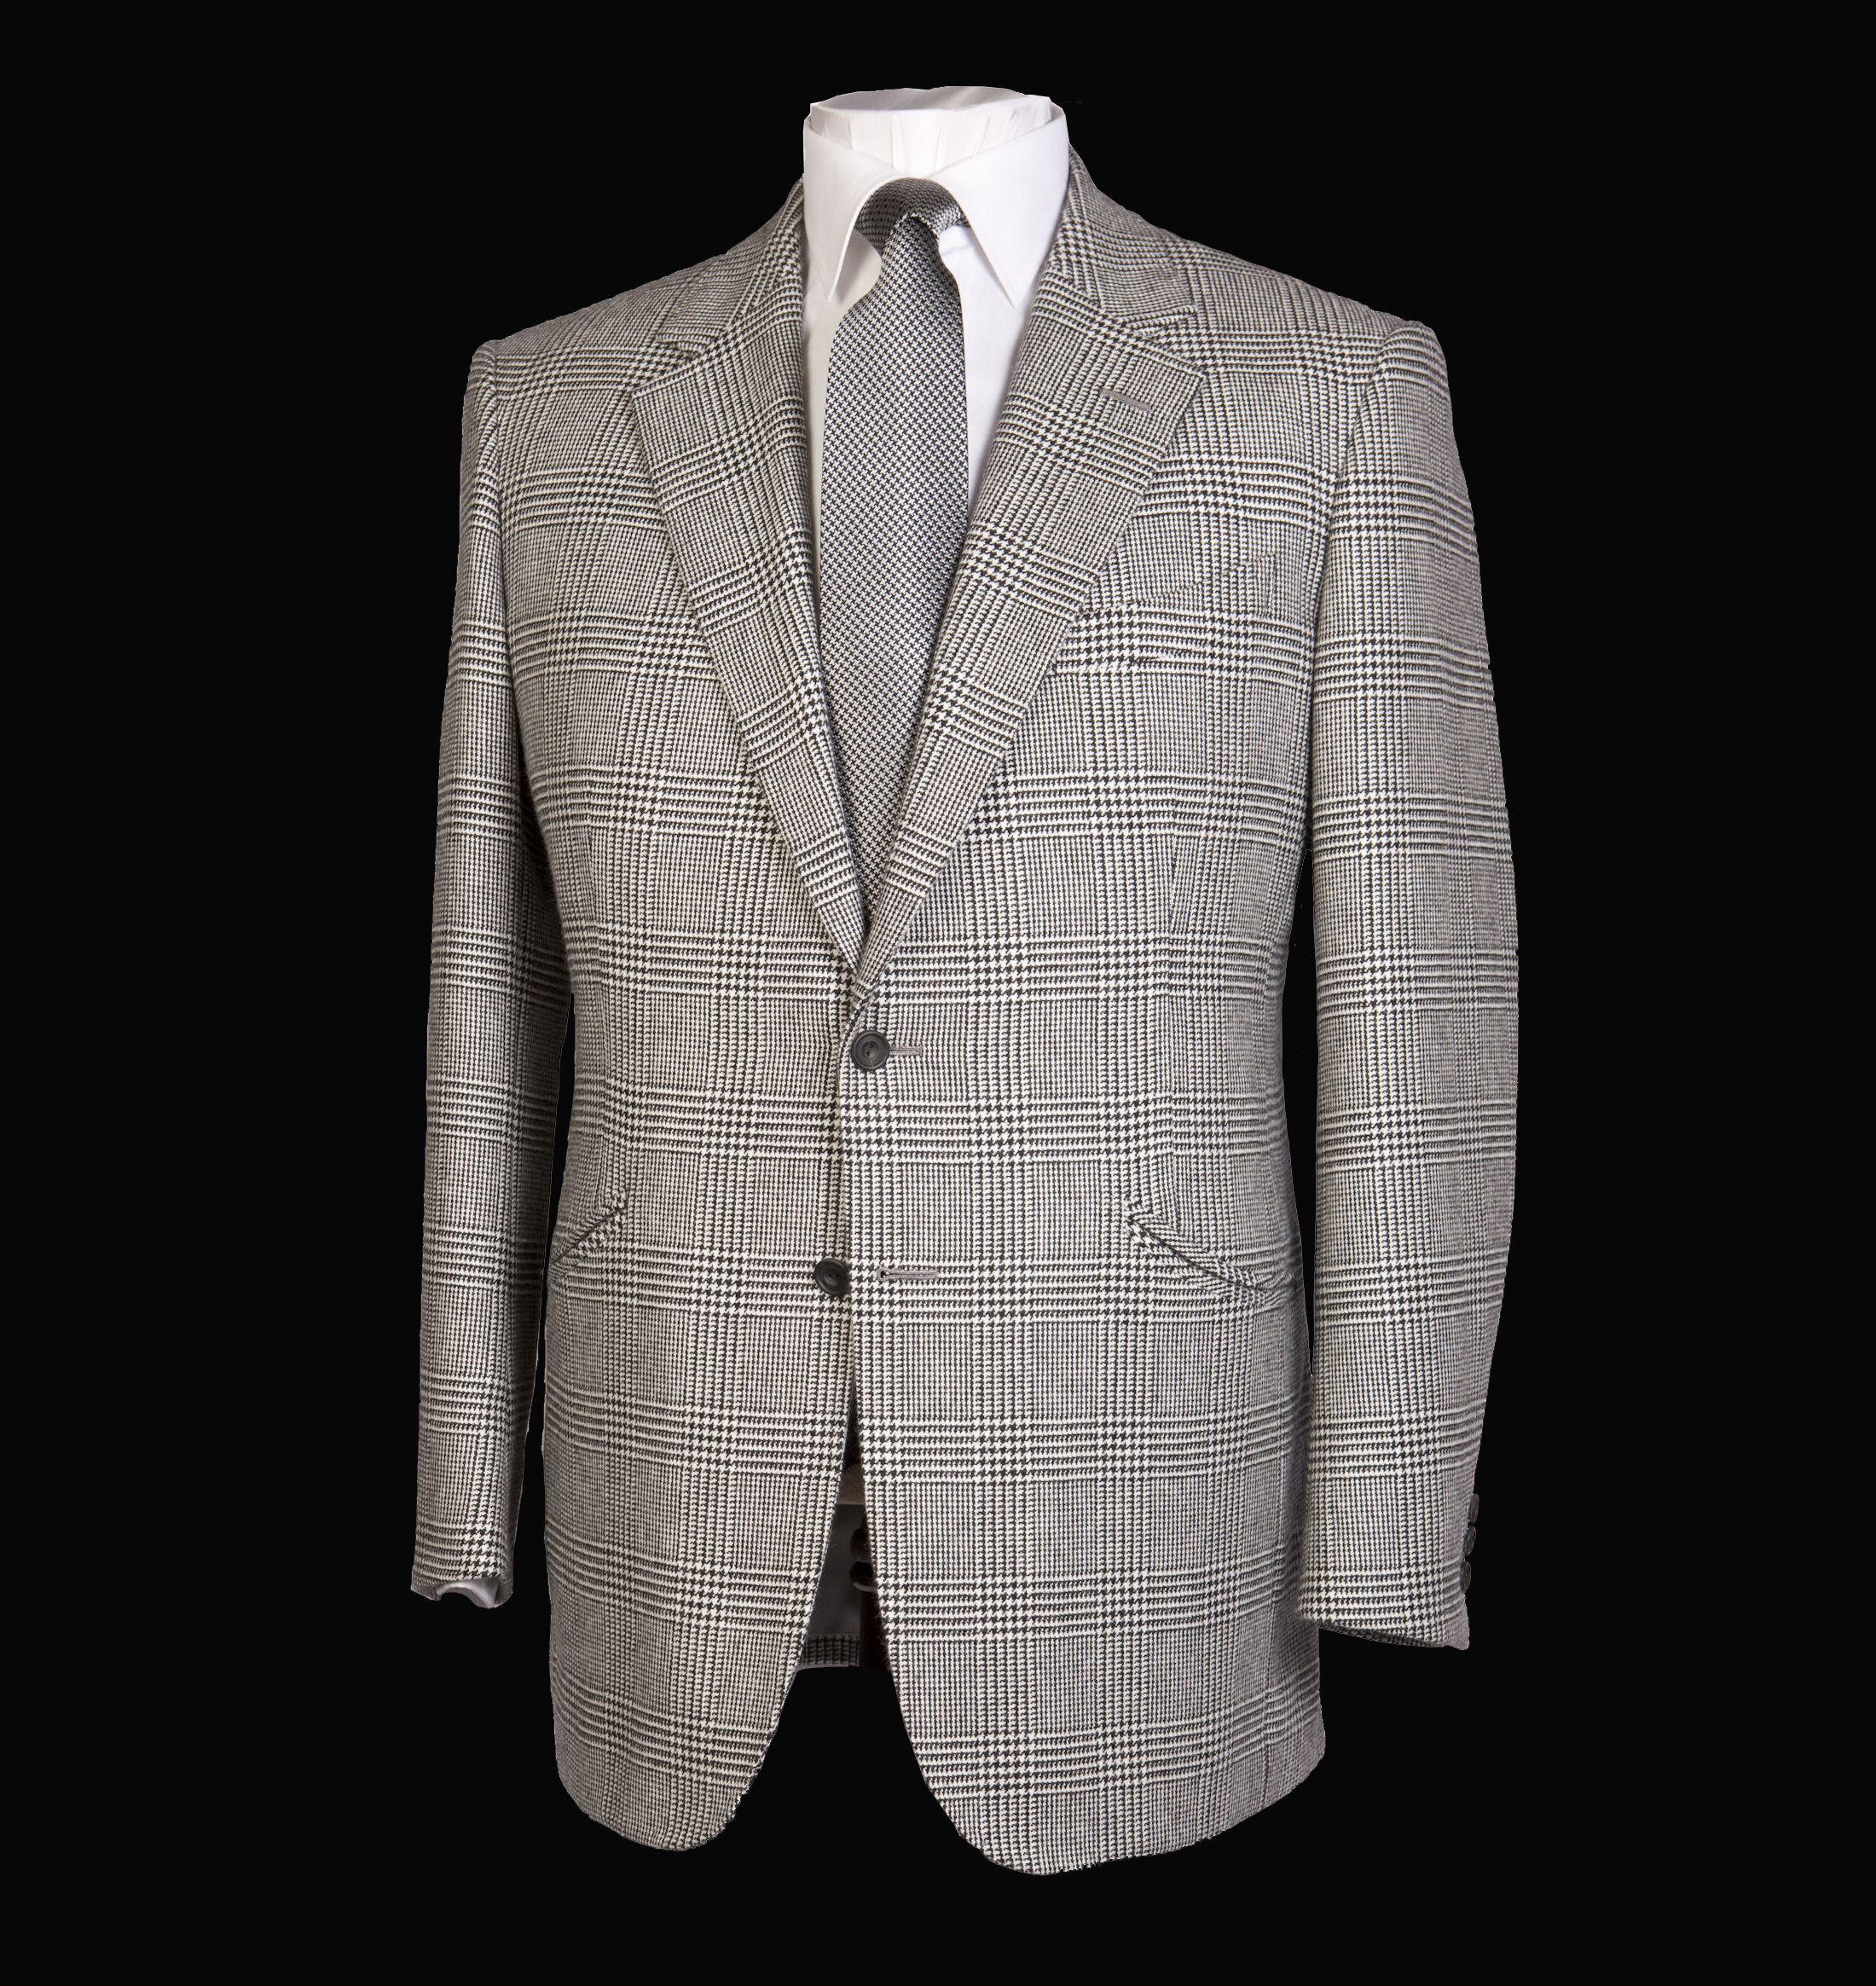 Grey Check Jacket with grey tie